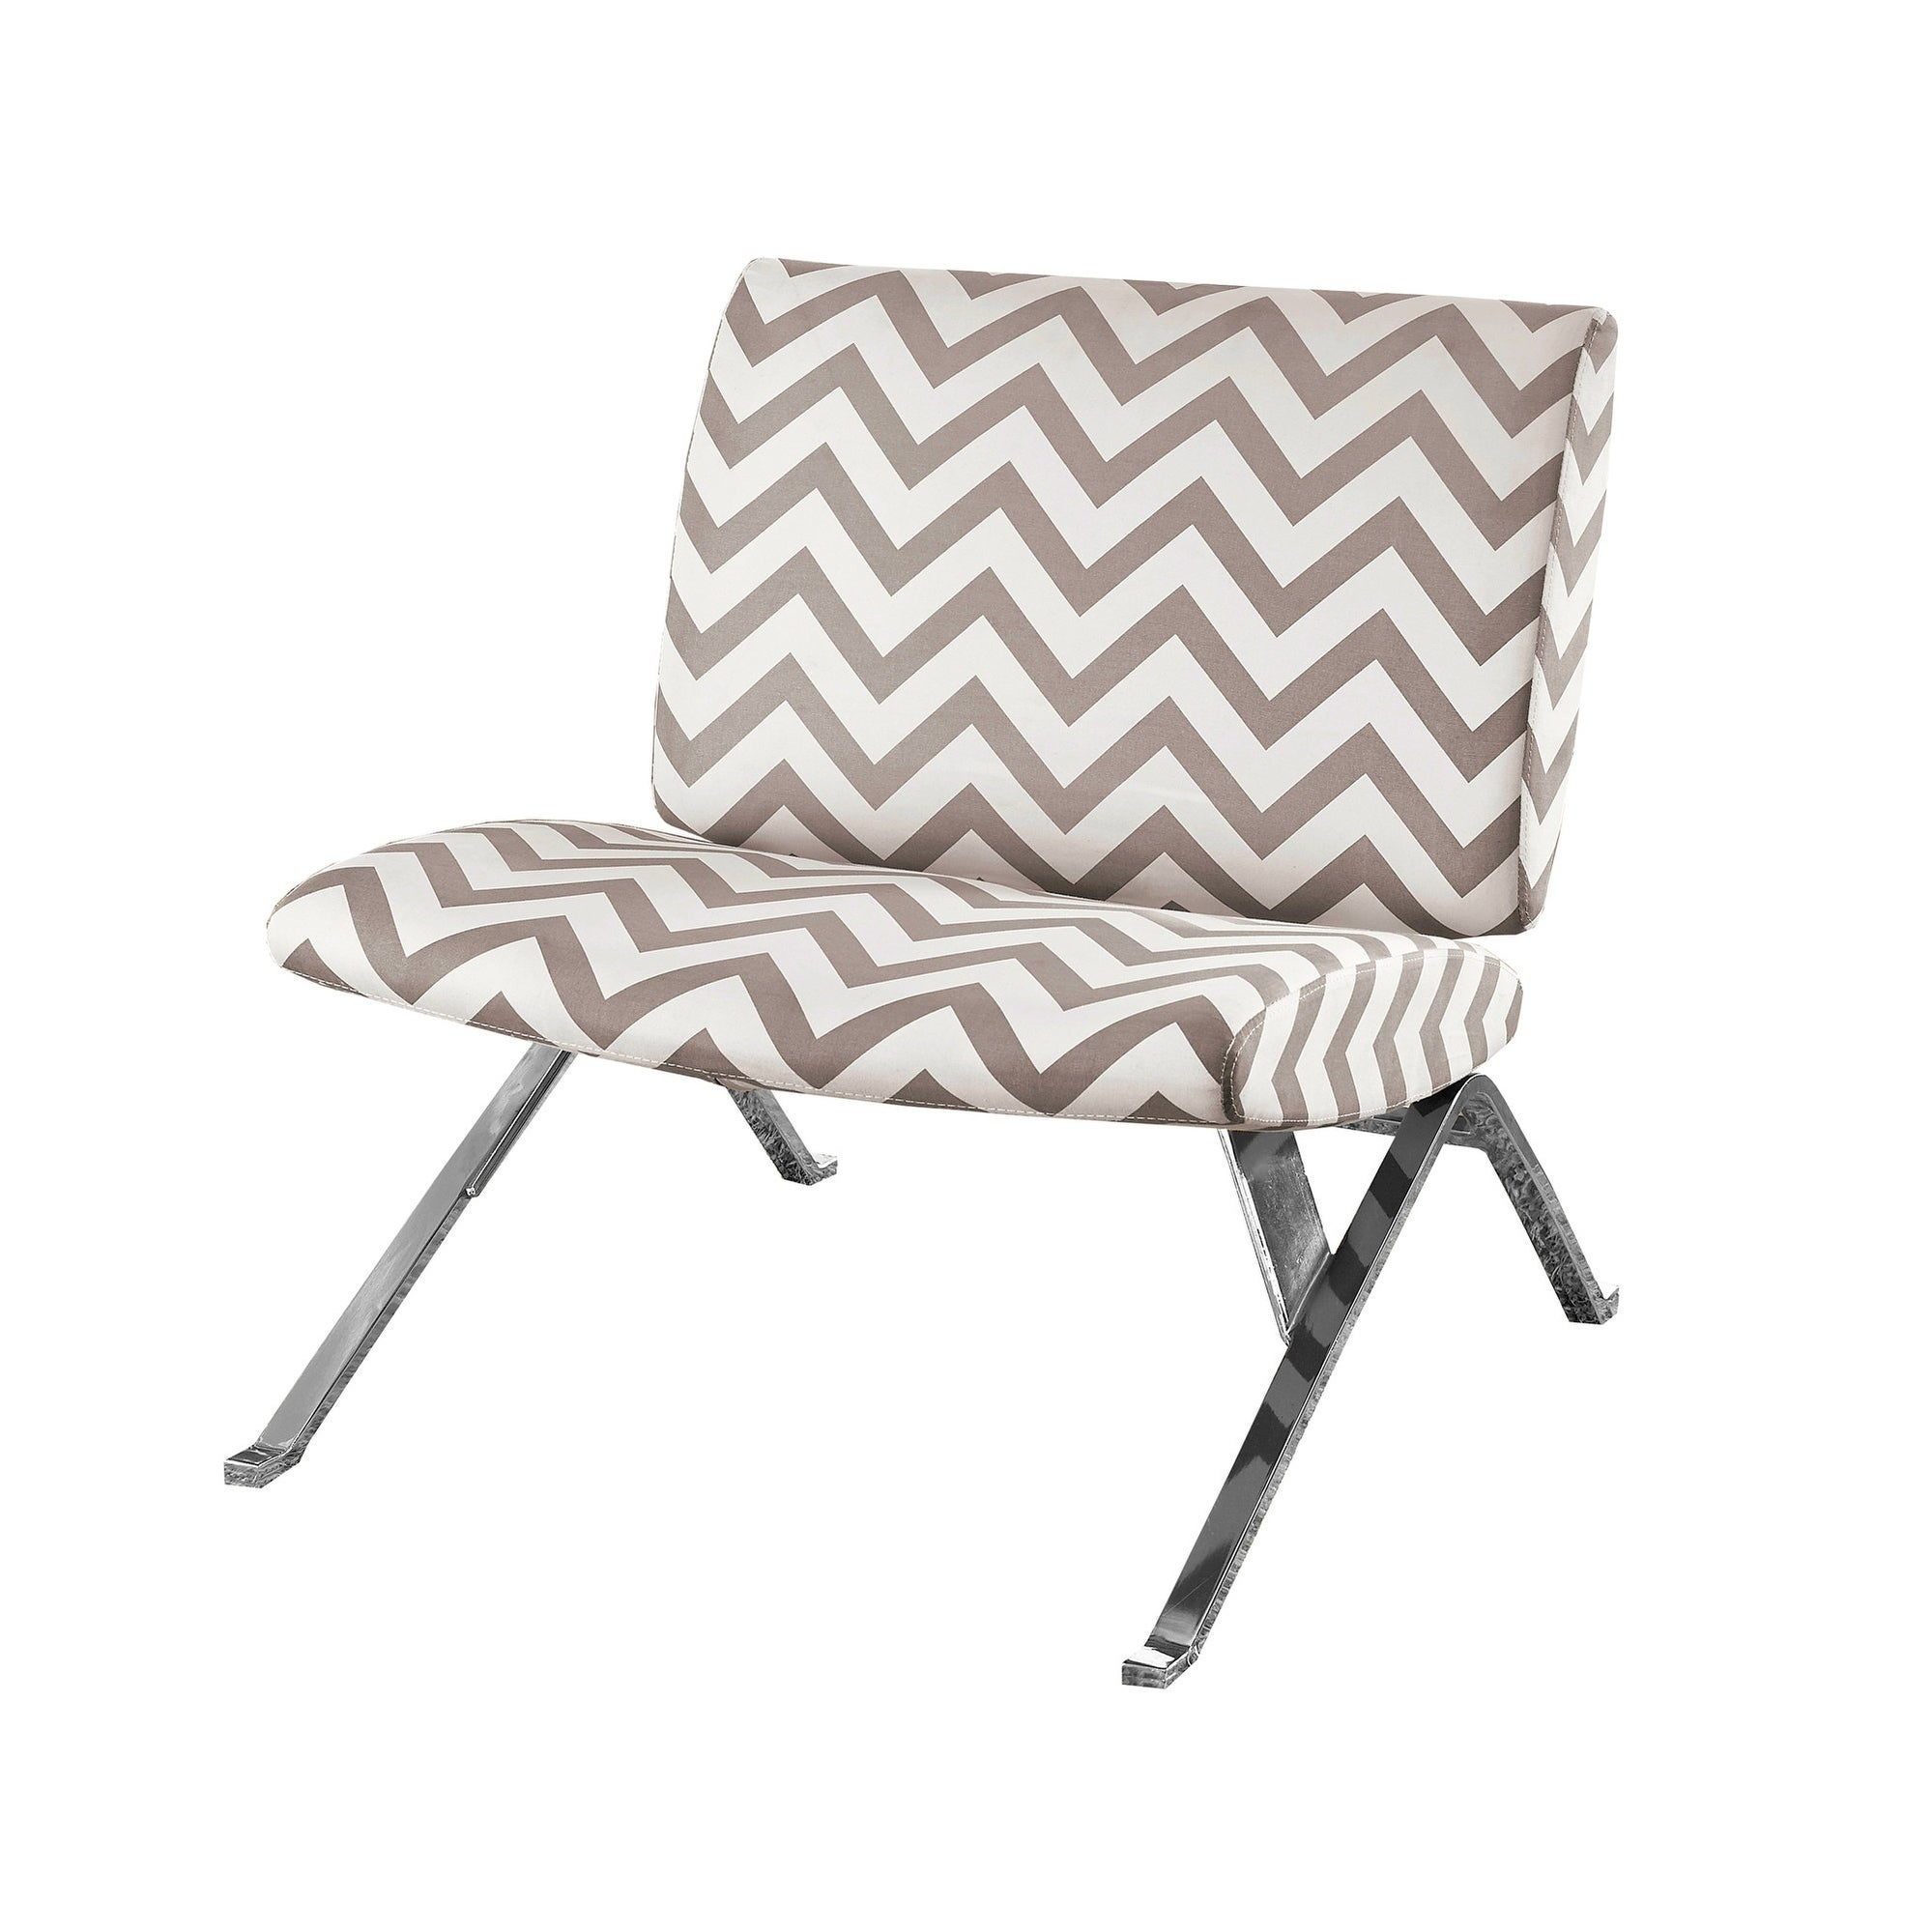 Dark Taupe Chevron Metal and Fabric Accent Chair (Dar taupe)